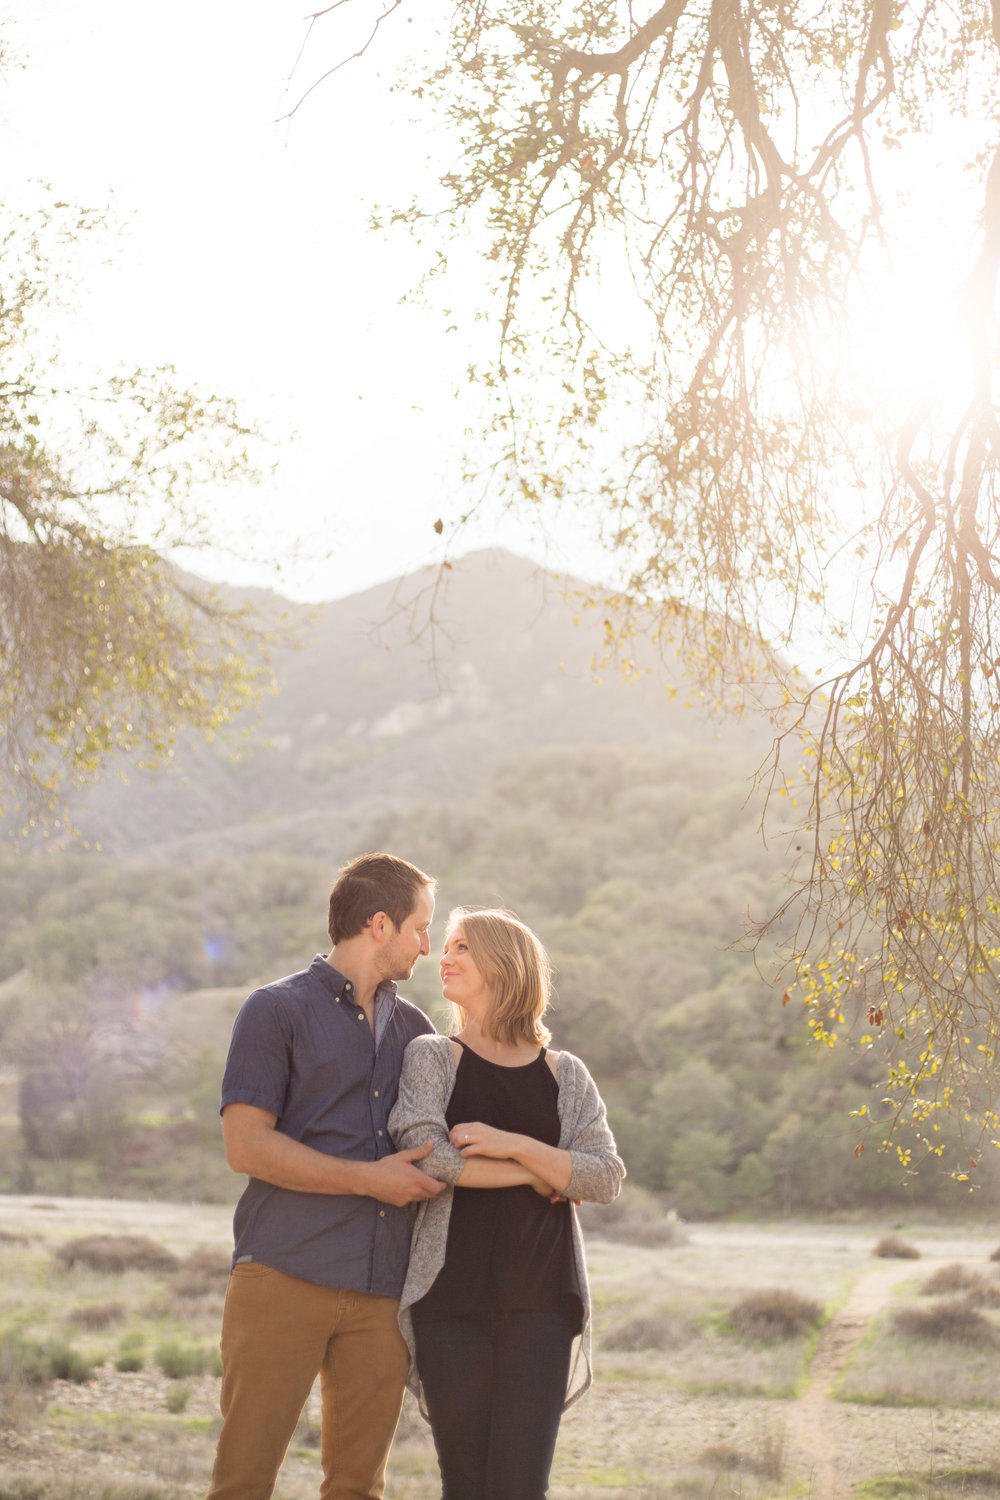 Hagen Engagement Malibu Creek Jan 15 2017-6485.jpg